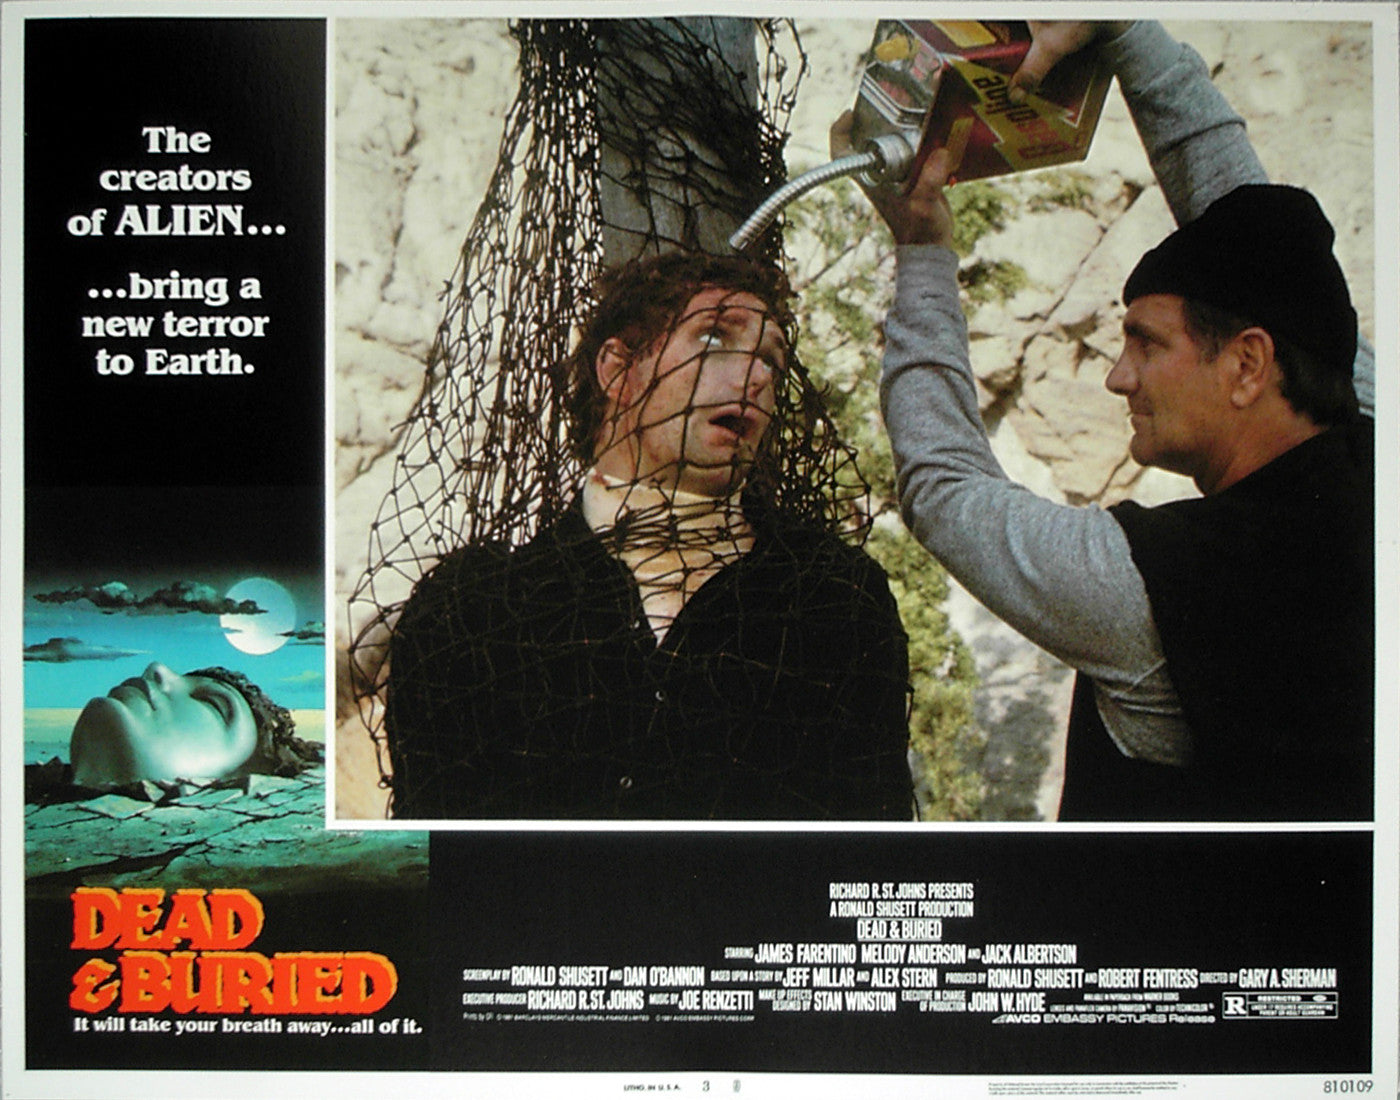 DEAD & BURIED - US lobby card v3